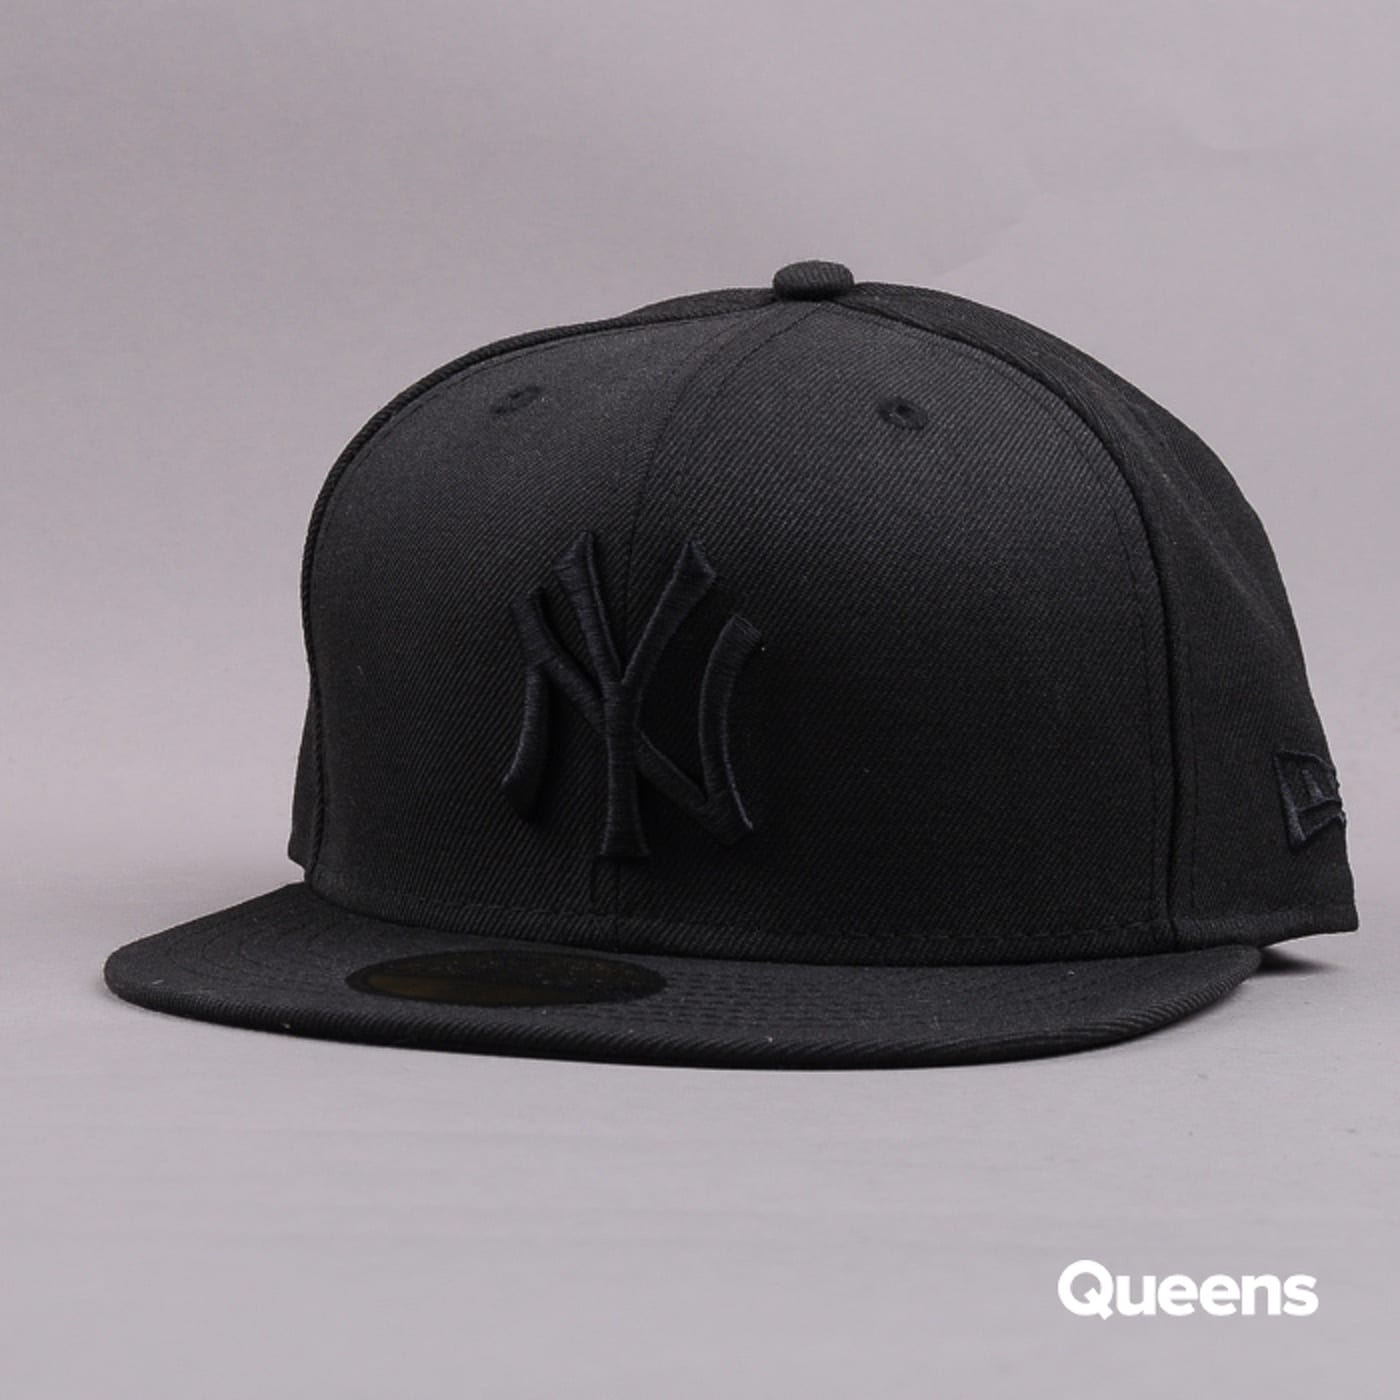 New Era Black On Black NY čierna